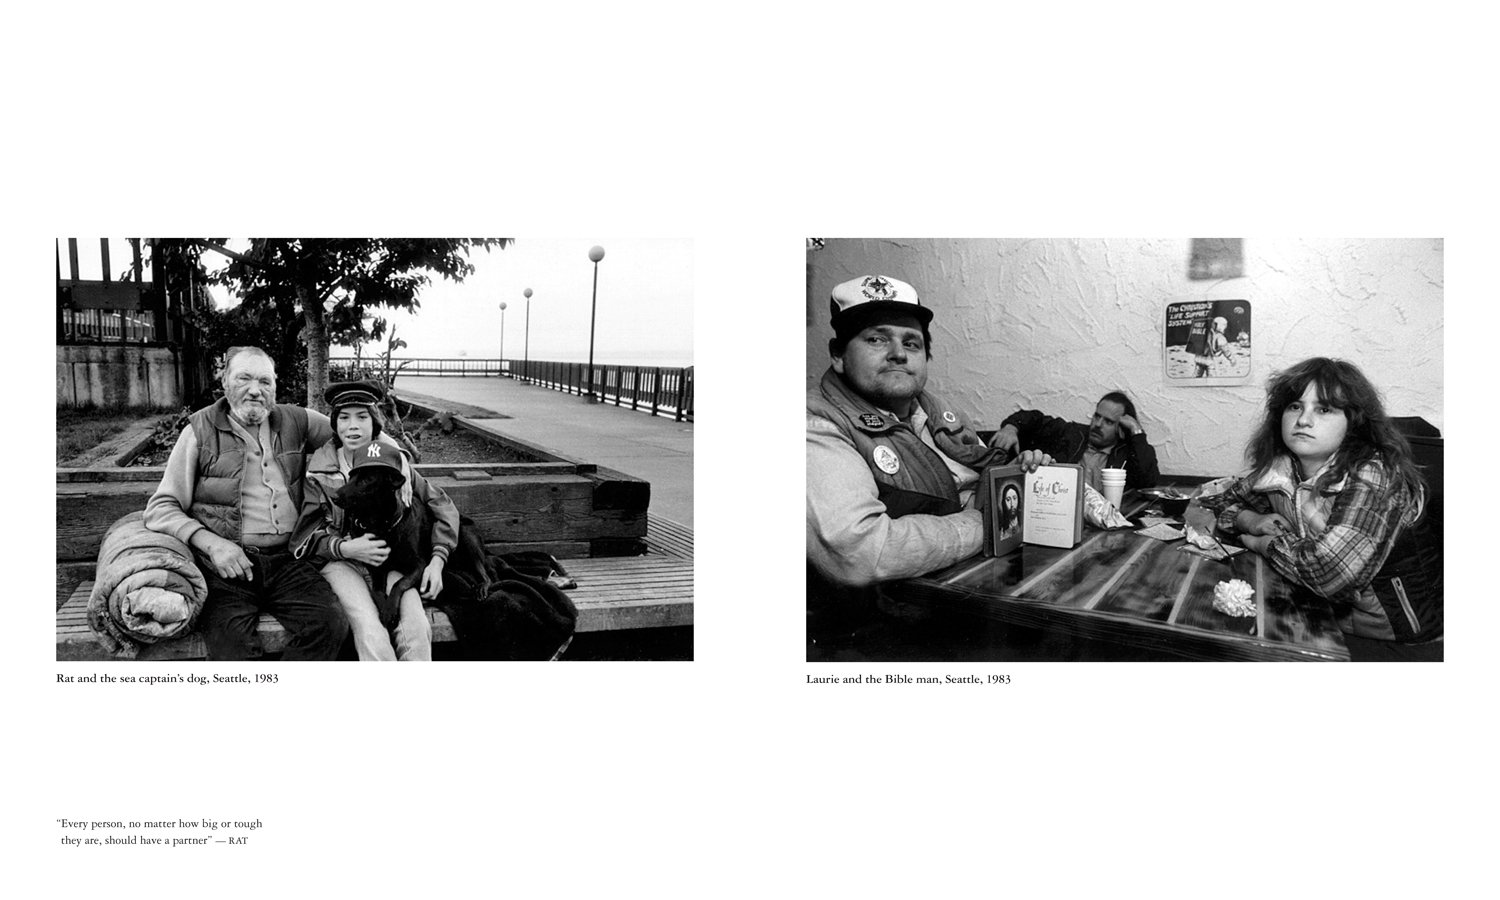 Tiny: Streetwise Revisited: Amazon.co.uk: Mary Ellen Mark, Isabel Allende: 9781597112628: Books